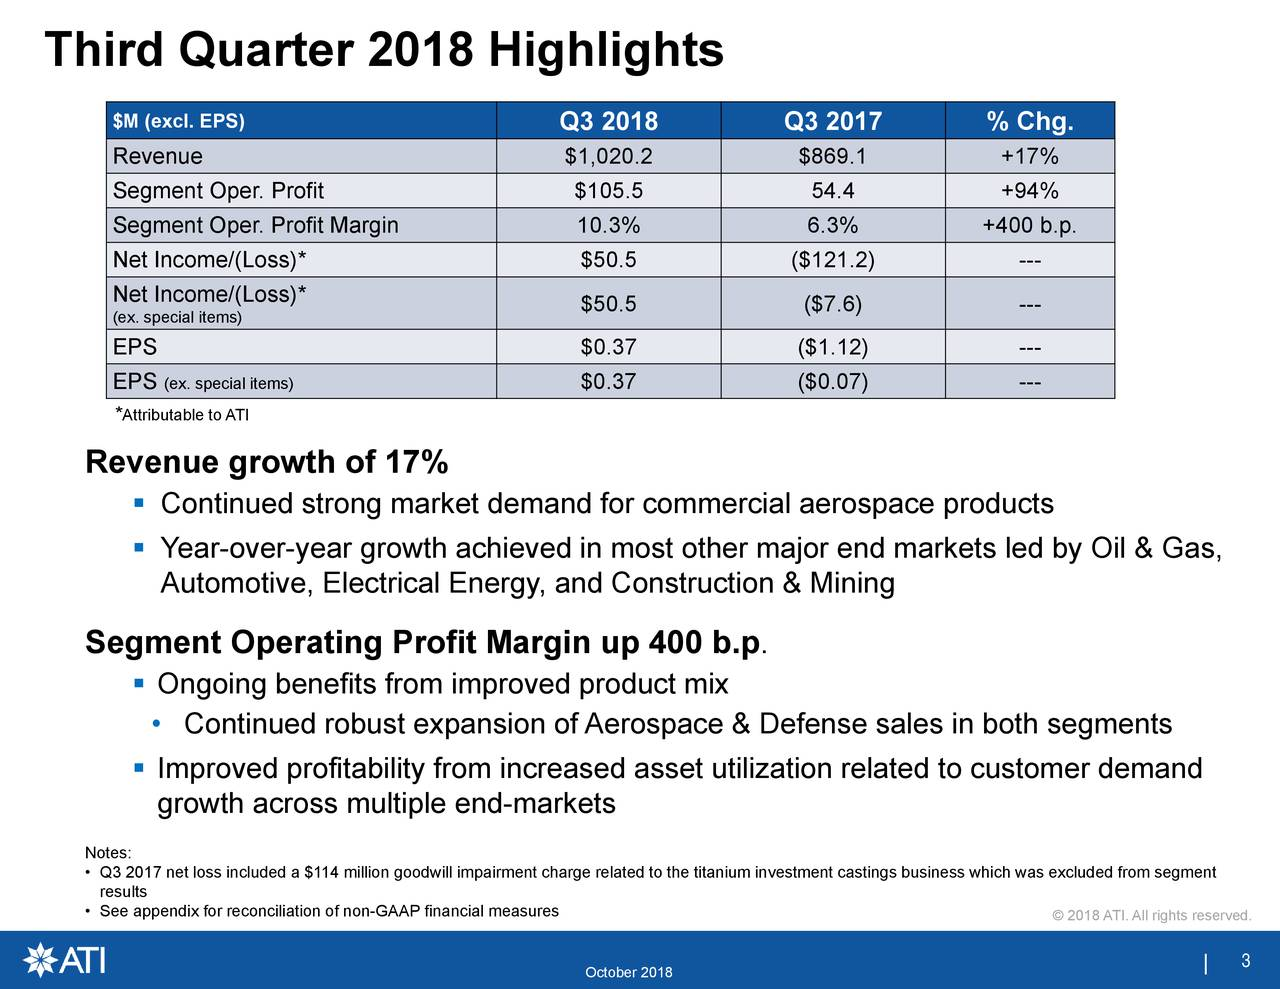 © 2018 ATI. All rights reserved. s segments led by Oil & Gas, h was excluded from segment to customer demand . pace & Defense sales in both $50.5 $0.37 ($7.6) ($0.07) --- --- October 2018 Q3 2018 Q3 2017 % Chg. harge related to the titanium investment castings business whic mproved product mix (ex. speciaContinued strong market demand for commercial aerospace product Ong•ingImpgroweth acrfsabmilyltf $M exclEnmegmetIet.Ppcat/fs*saginable to $1,020.5..$50.5 $0.$869.44.$121.2) ($1.12) results Revenue gro S egtm oef1tO% peNo•Q3• See appendix for reconciliation of non-GAAP financial measures Third Quarter 2018 Highlights